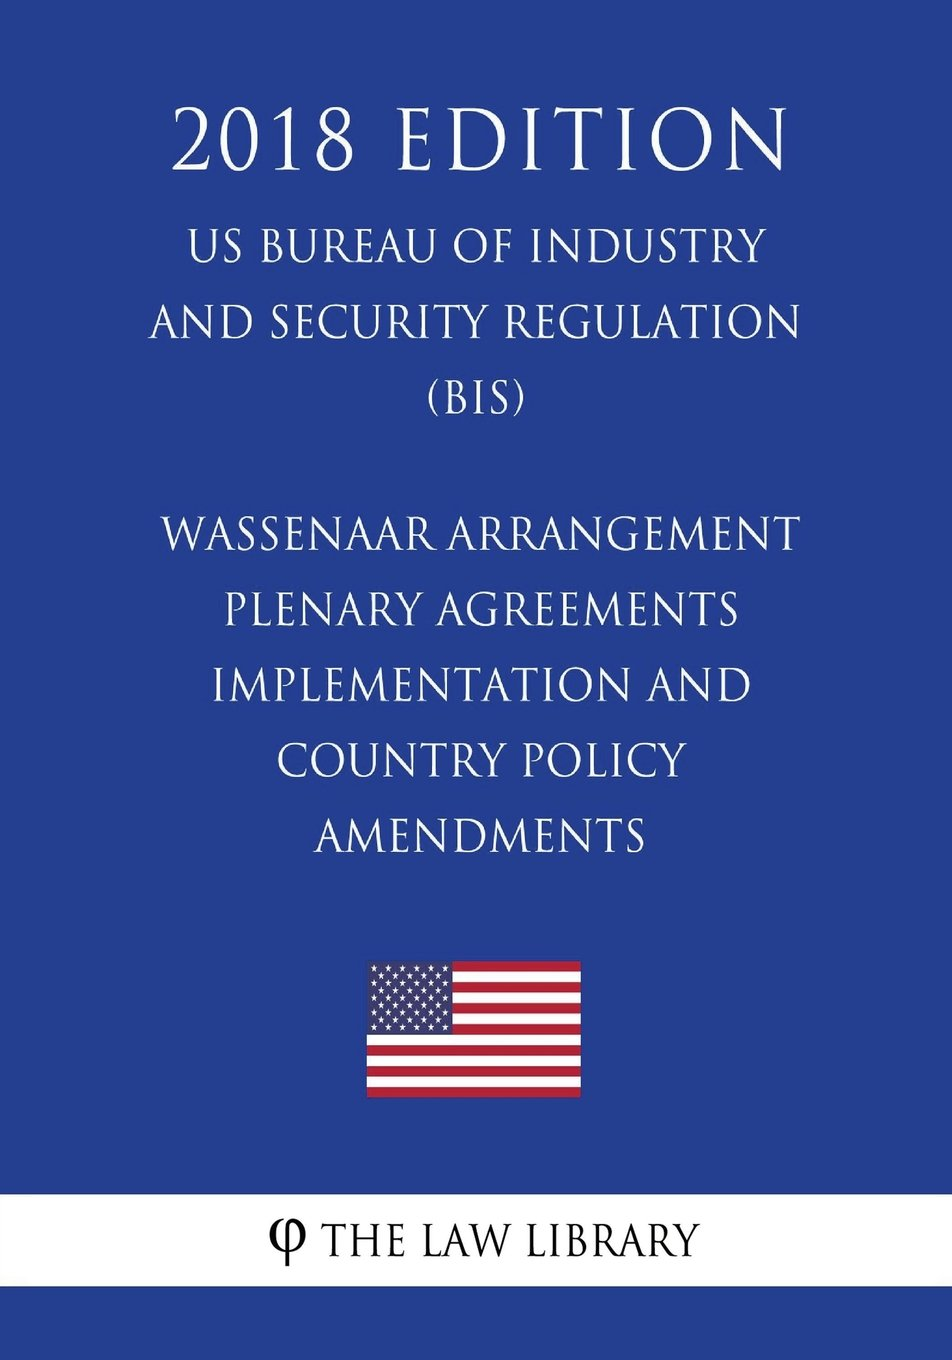 Wassenaar Arrangement Plenary Agreements Implementation and Country Policy Amendments (US Bureau of Industry and Security Regulation) (BIS) (2018 Edition) pdf